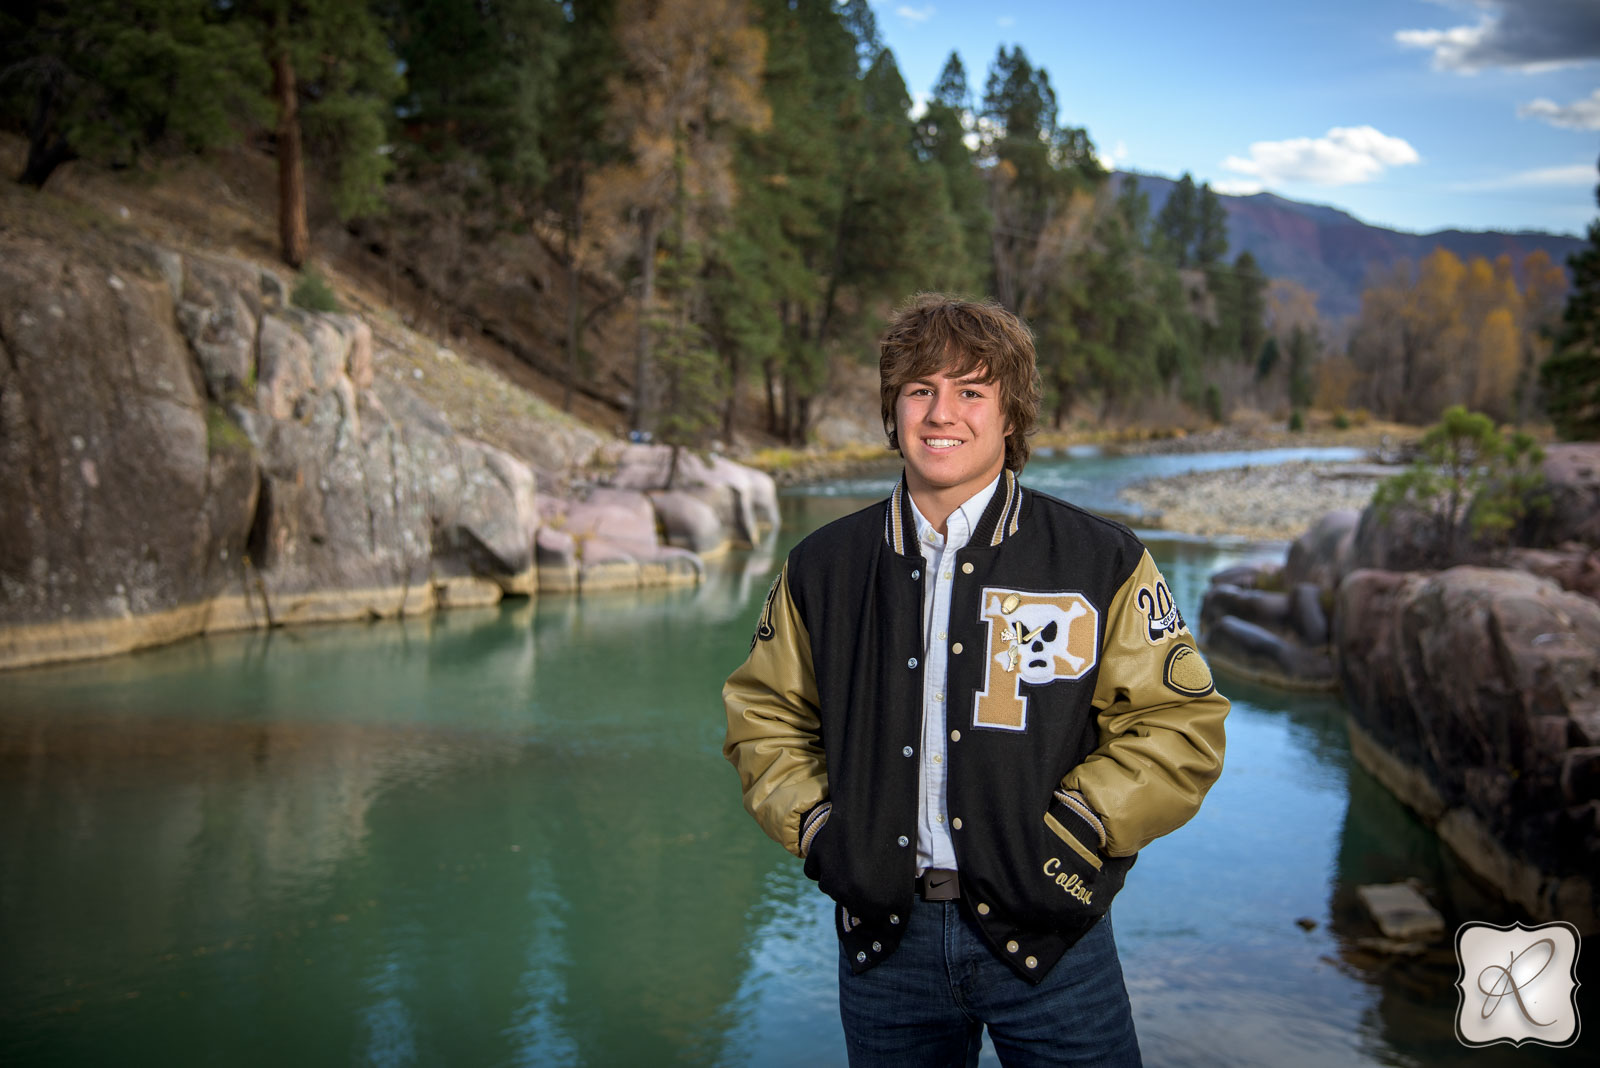 senior pictures in Durango Colorado by Allison Ragsdale Photography